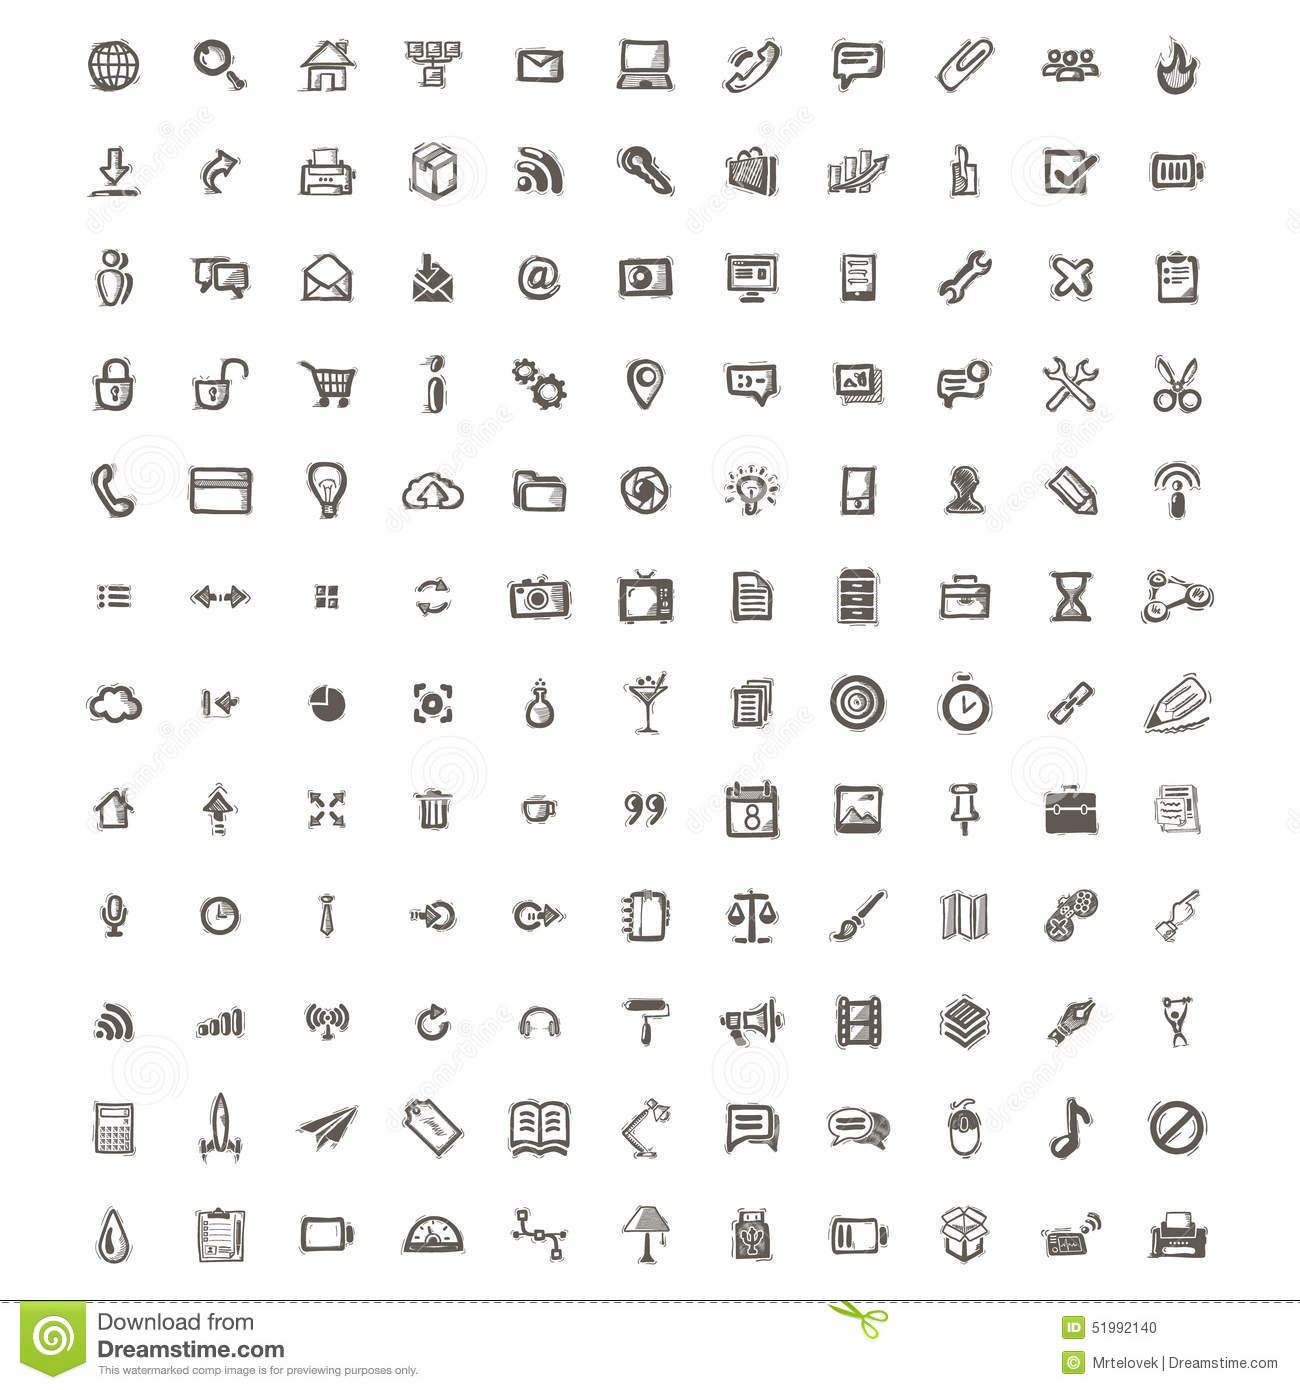 Icons sketches for the site